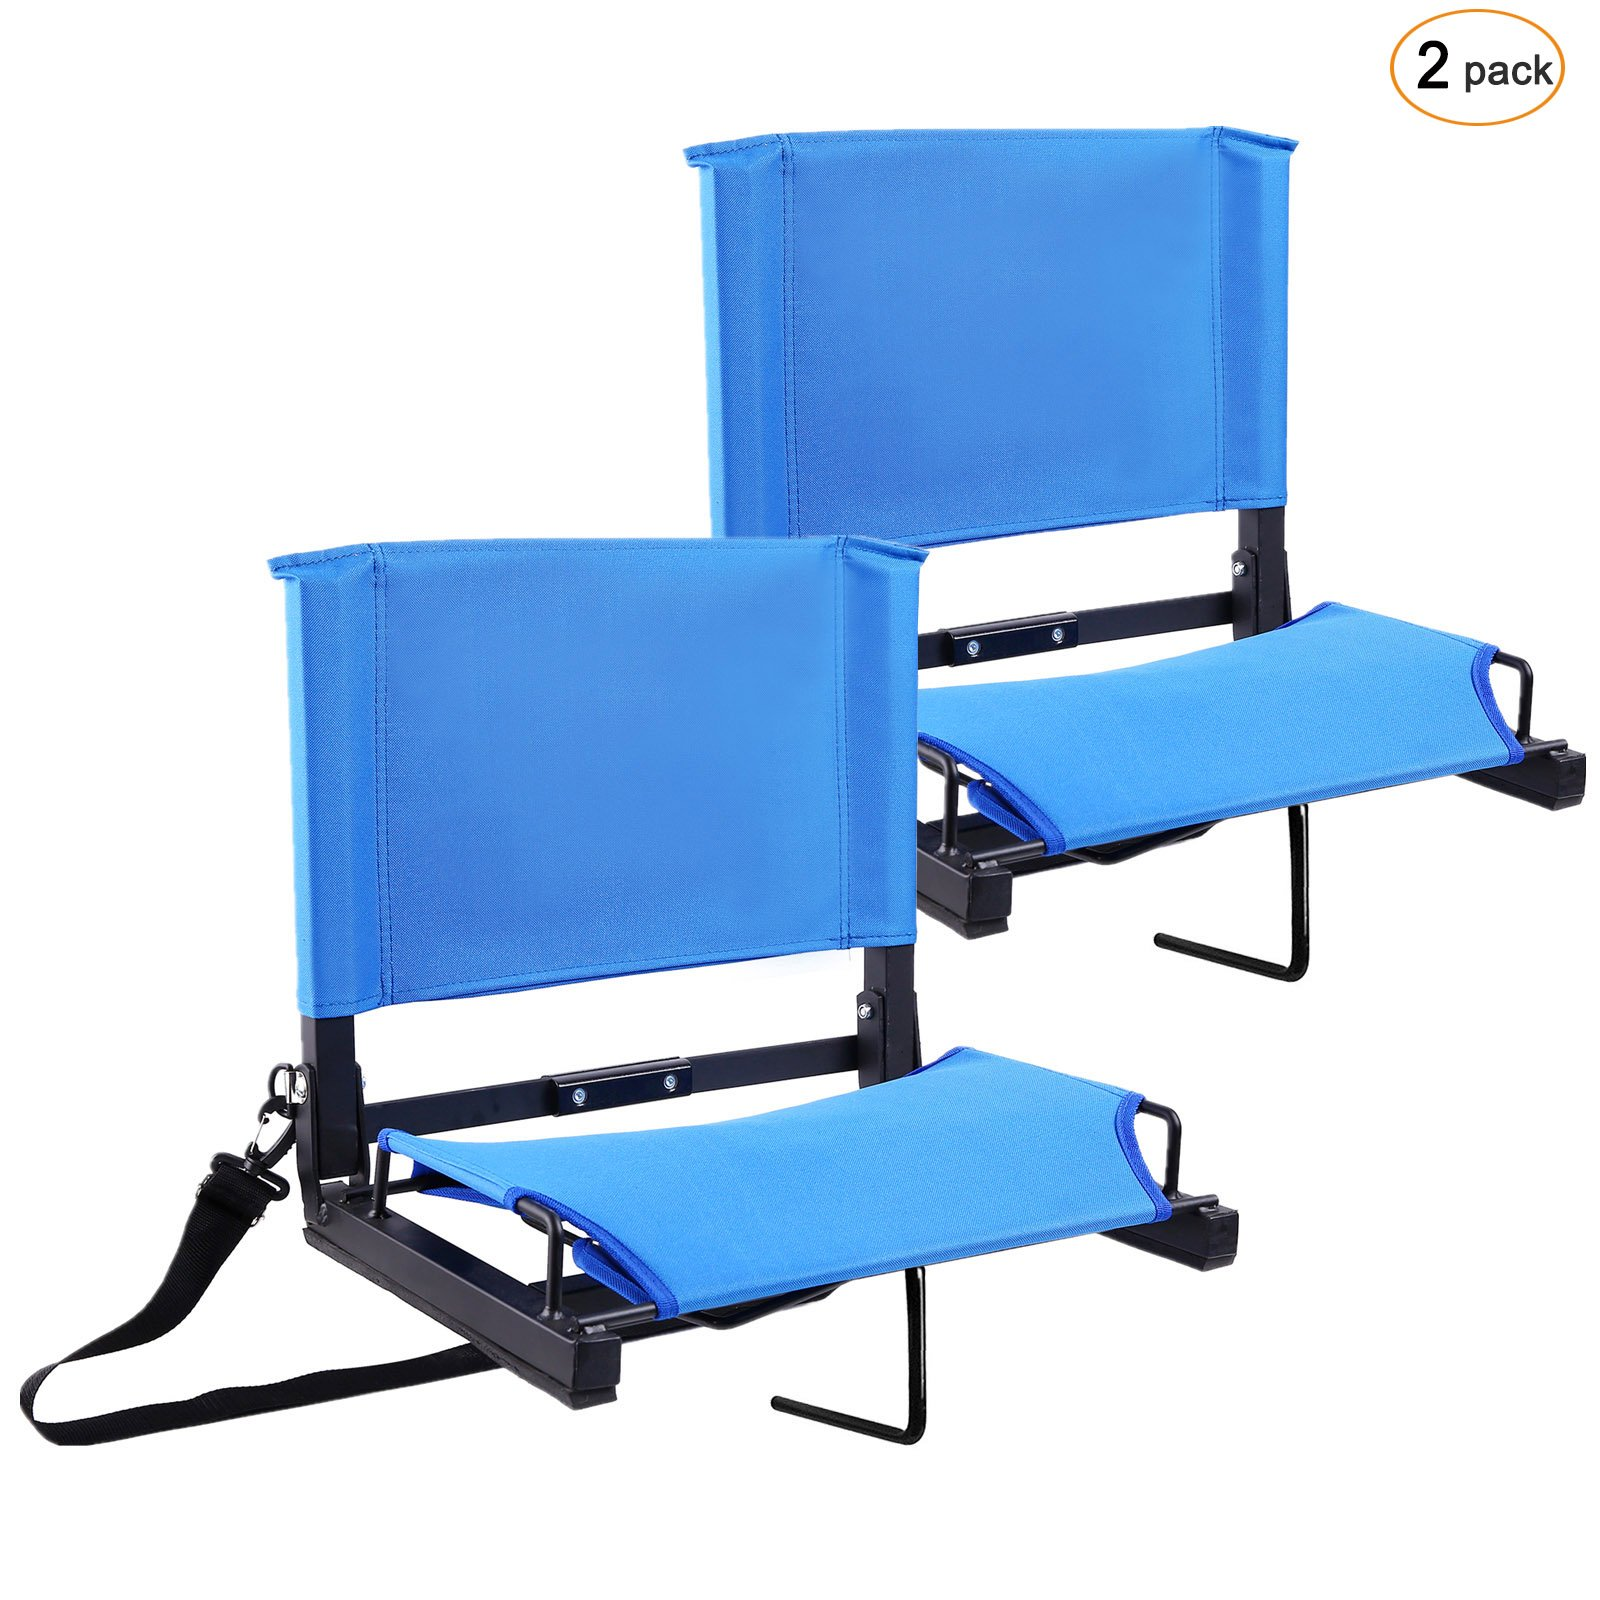 Ohuhu Stadium Chairs/Stadium Seats Bleacher Seats with Bungee Cord Cushion and Comfortable Backrest, Blue 2-Pack by Ohuhu